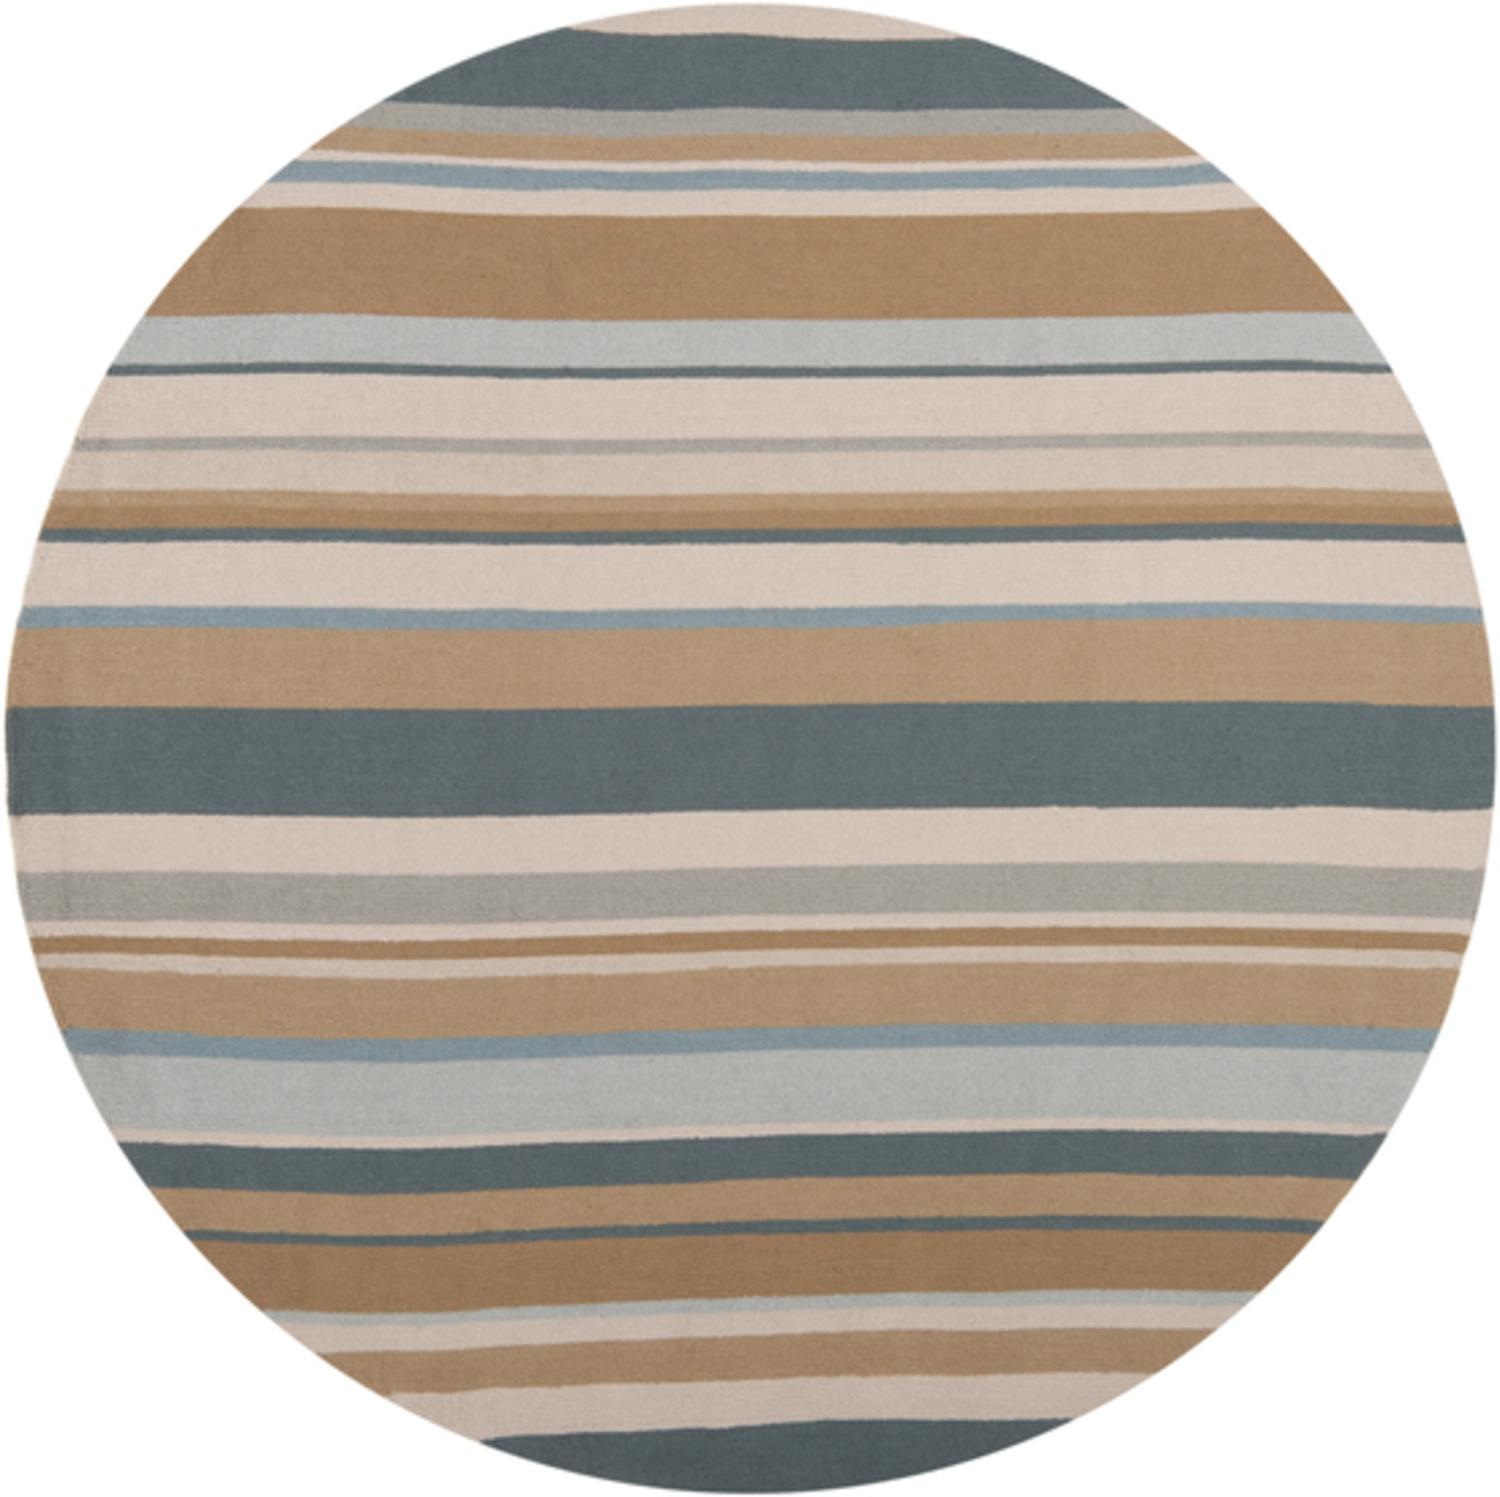 8' Stupendous Stripes Forest Green and Tan Round Outdoor Area Throw Rug